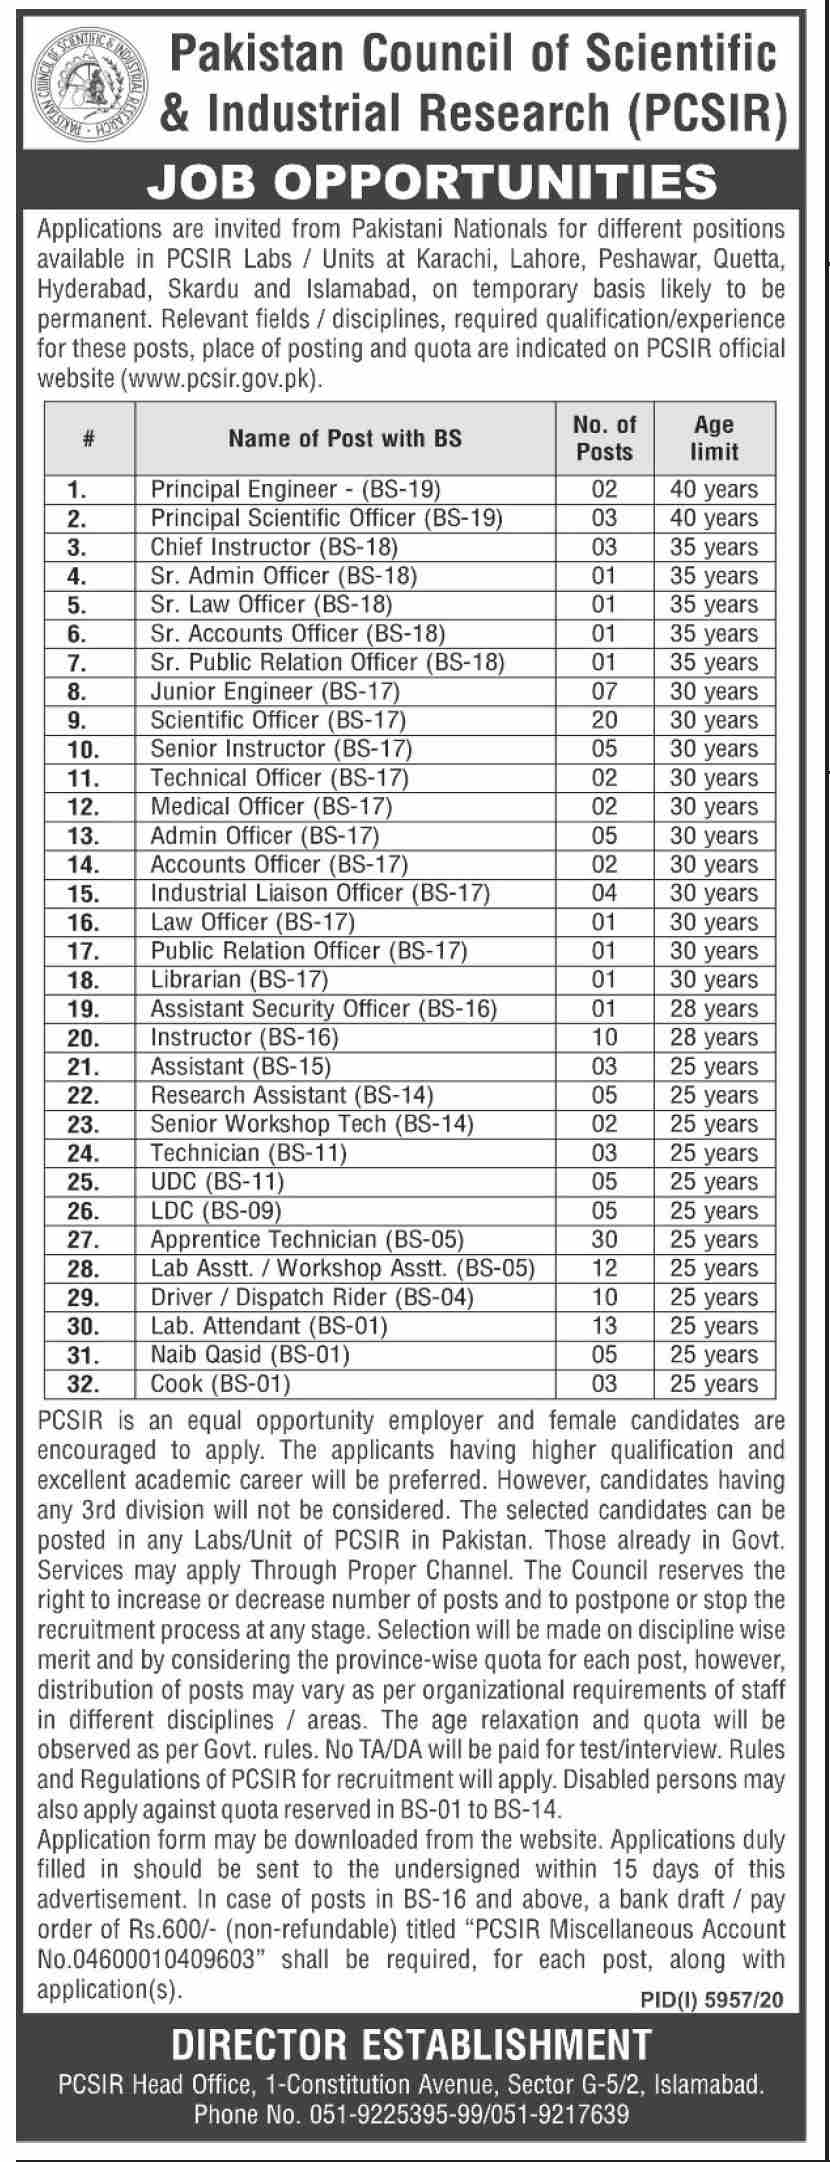 Pakistan Council of Scientific & Industrial Research (PCSIR) Jobs May 2021